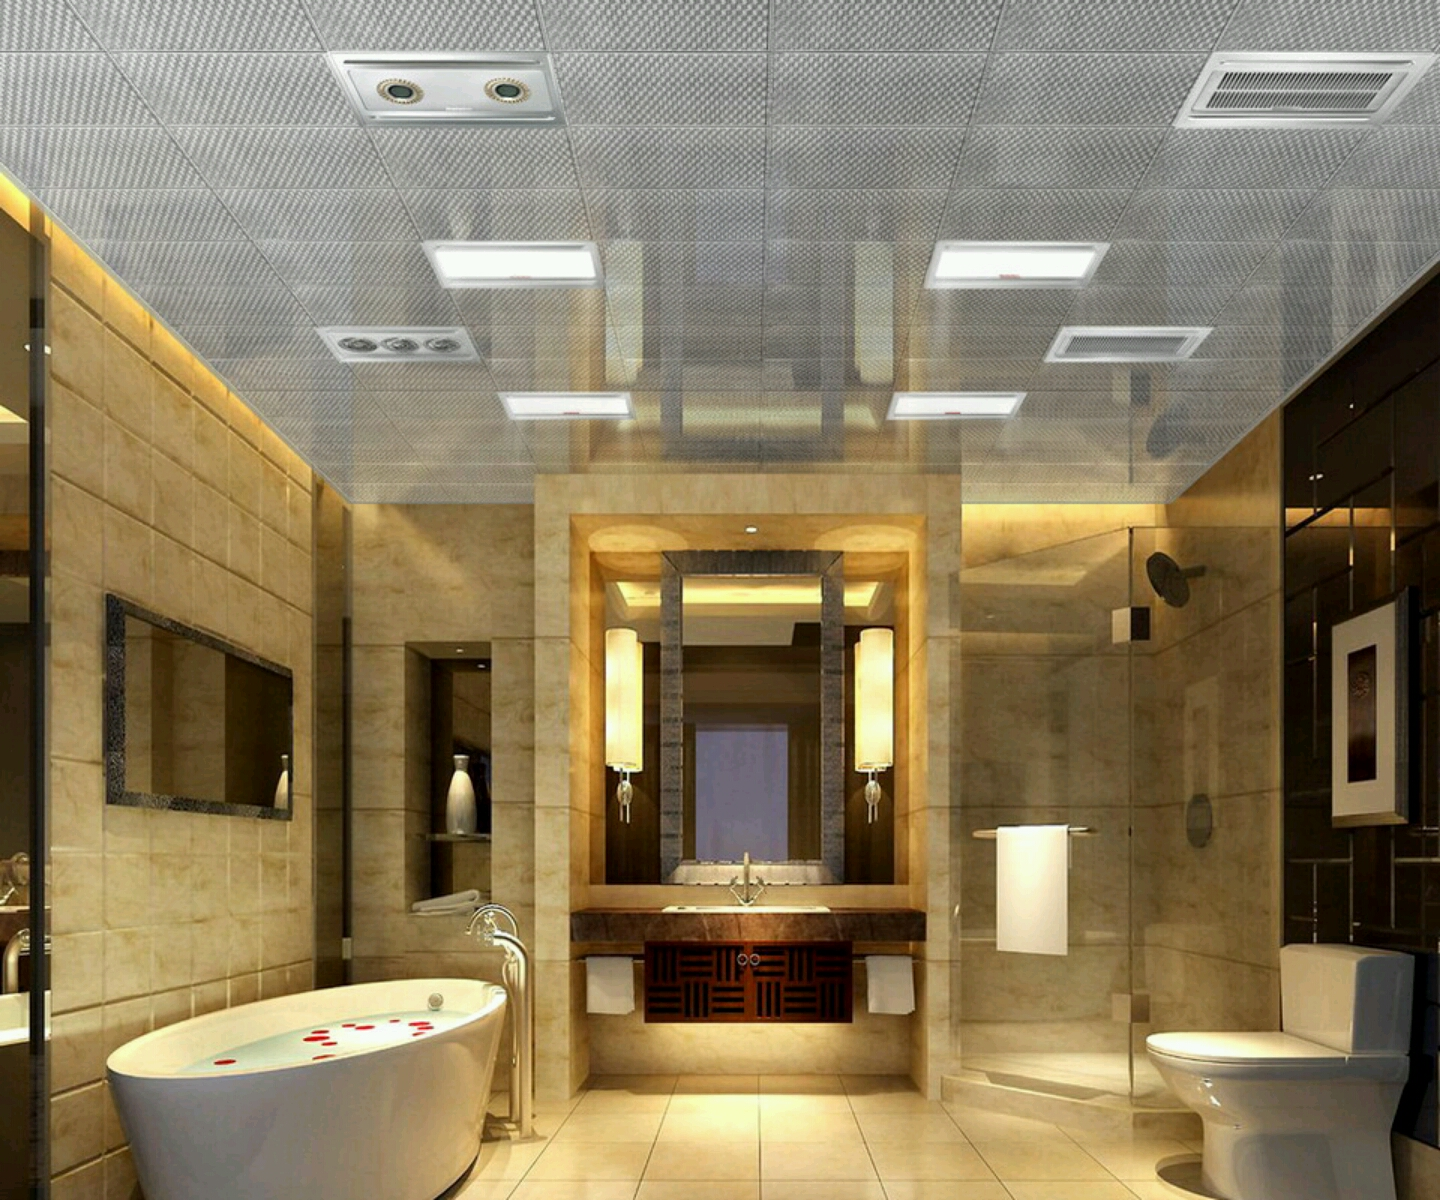 New Home Designs Latest Luxury Homes Interior Designs Ideas: New Home Designs Latest.: Luxury Bathrooms Designs Ideas